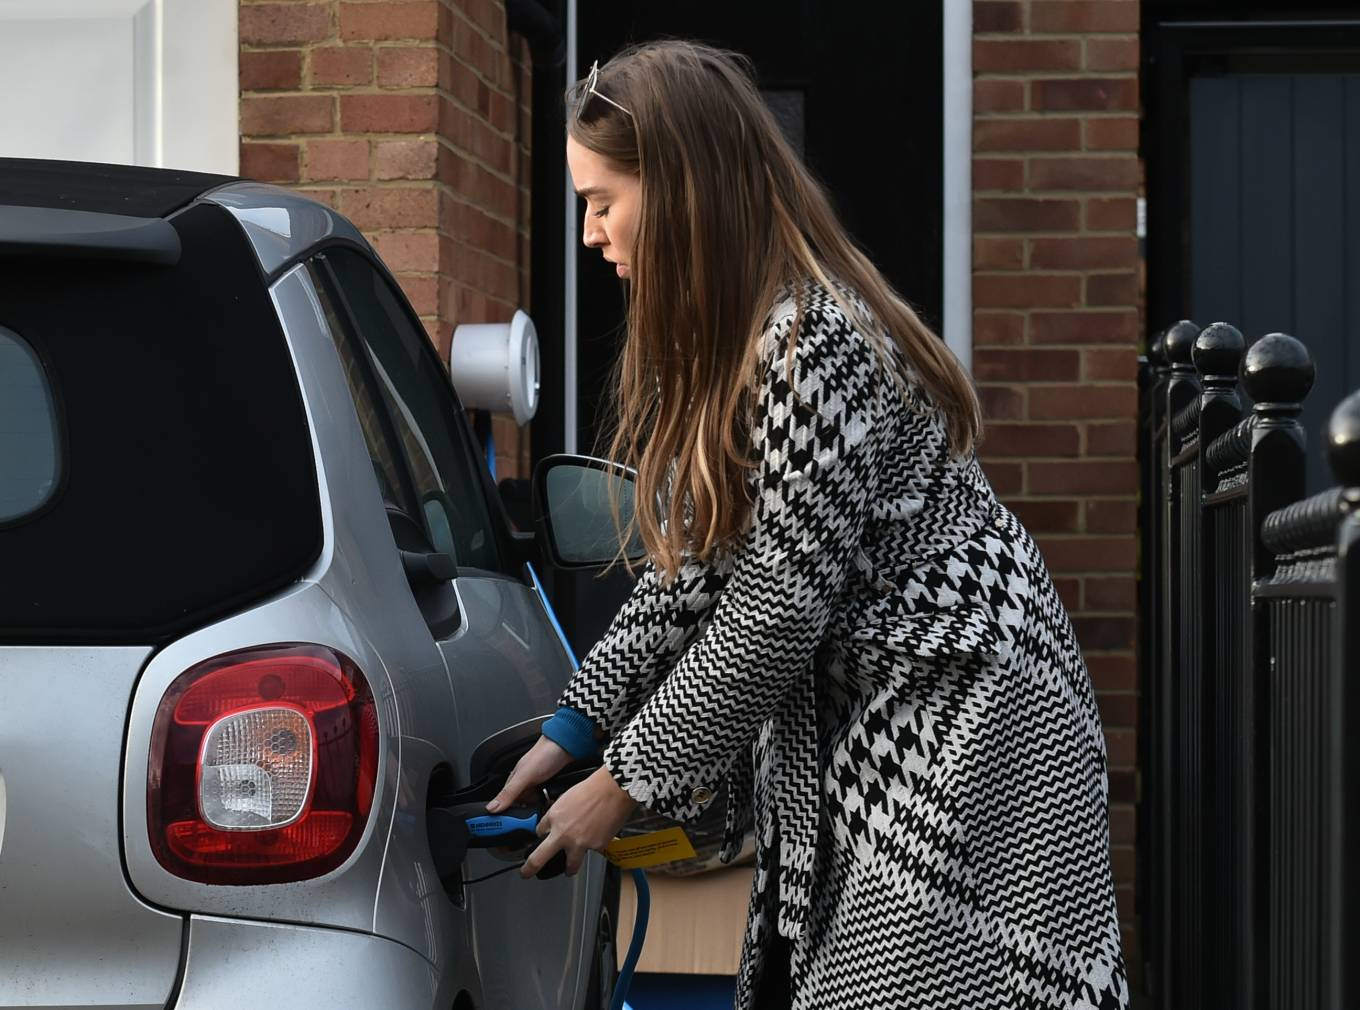 Chloe Ross - In her new electric smart car in Chigwell